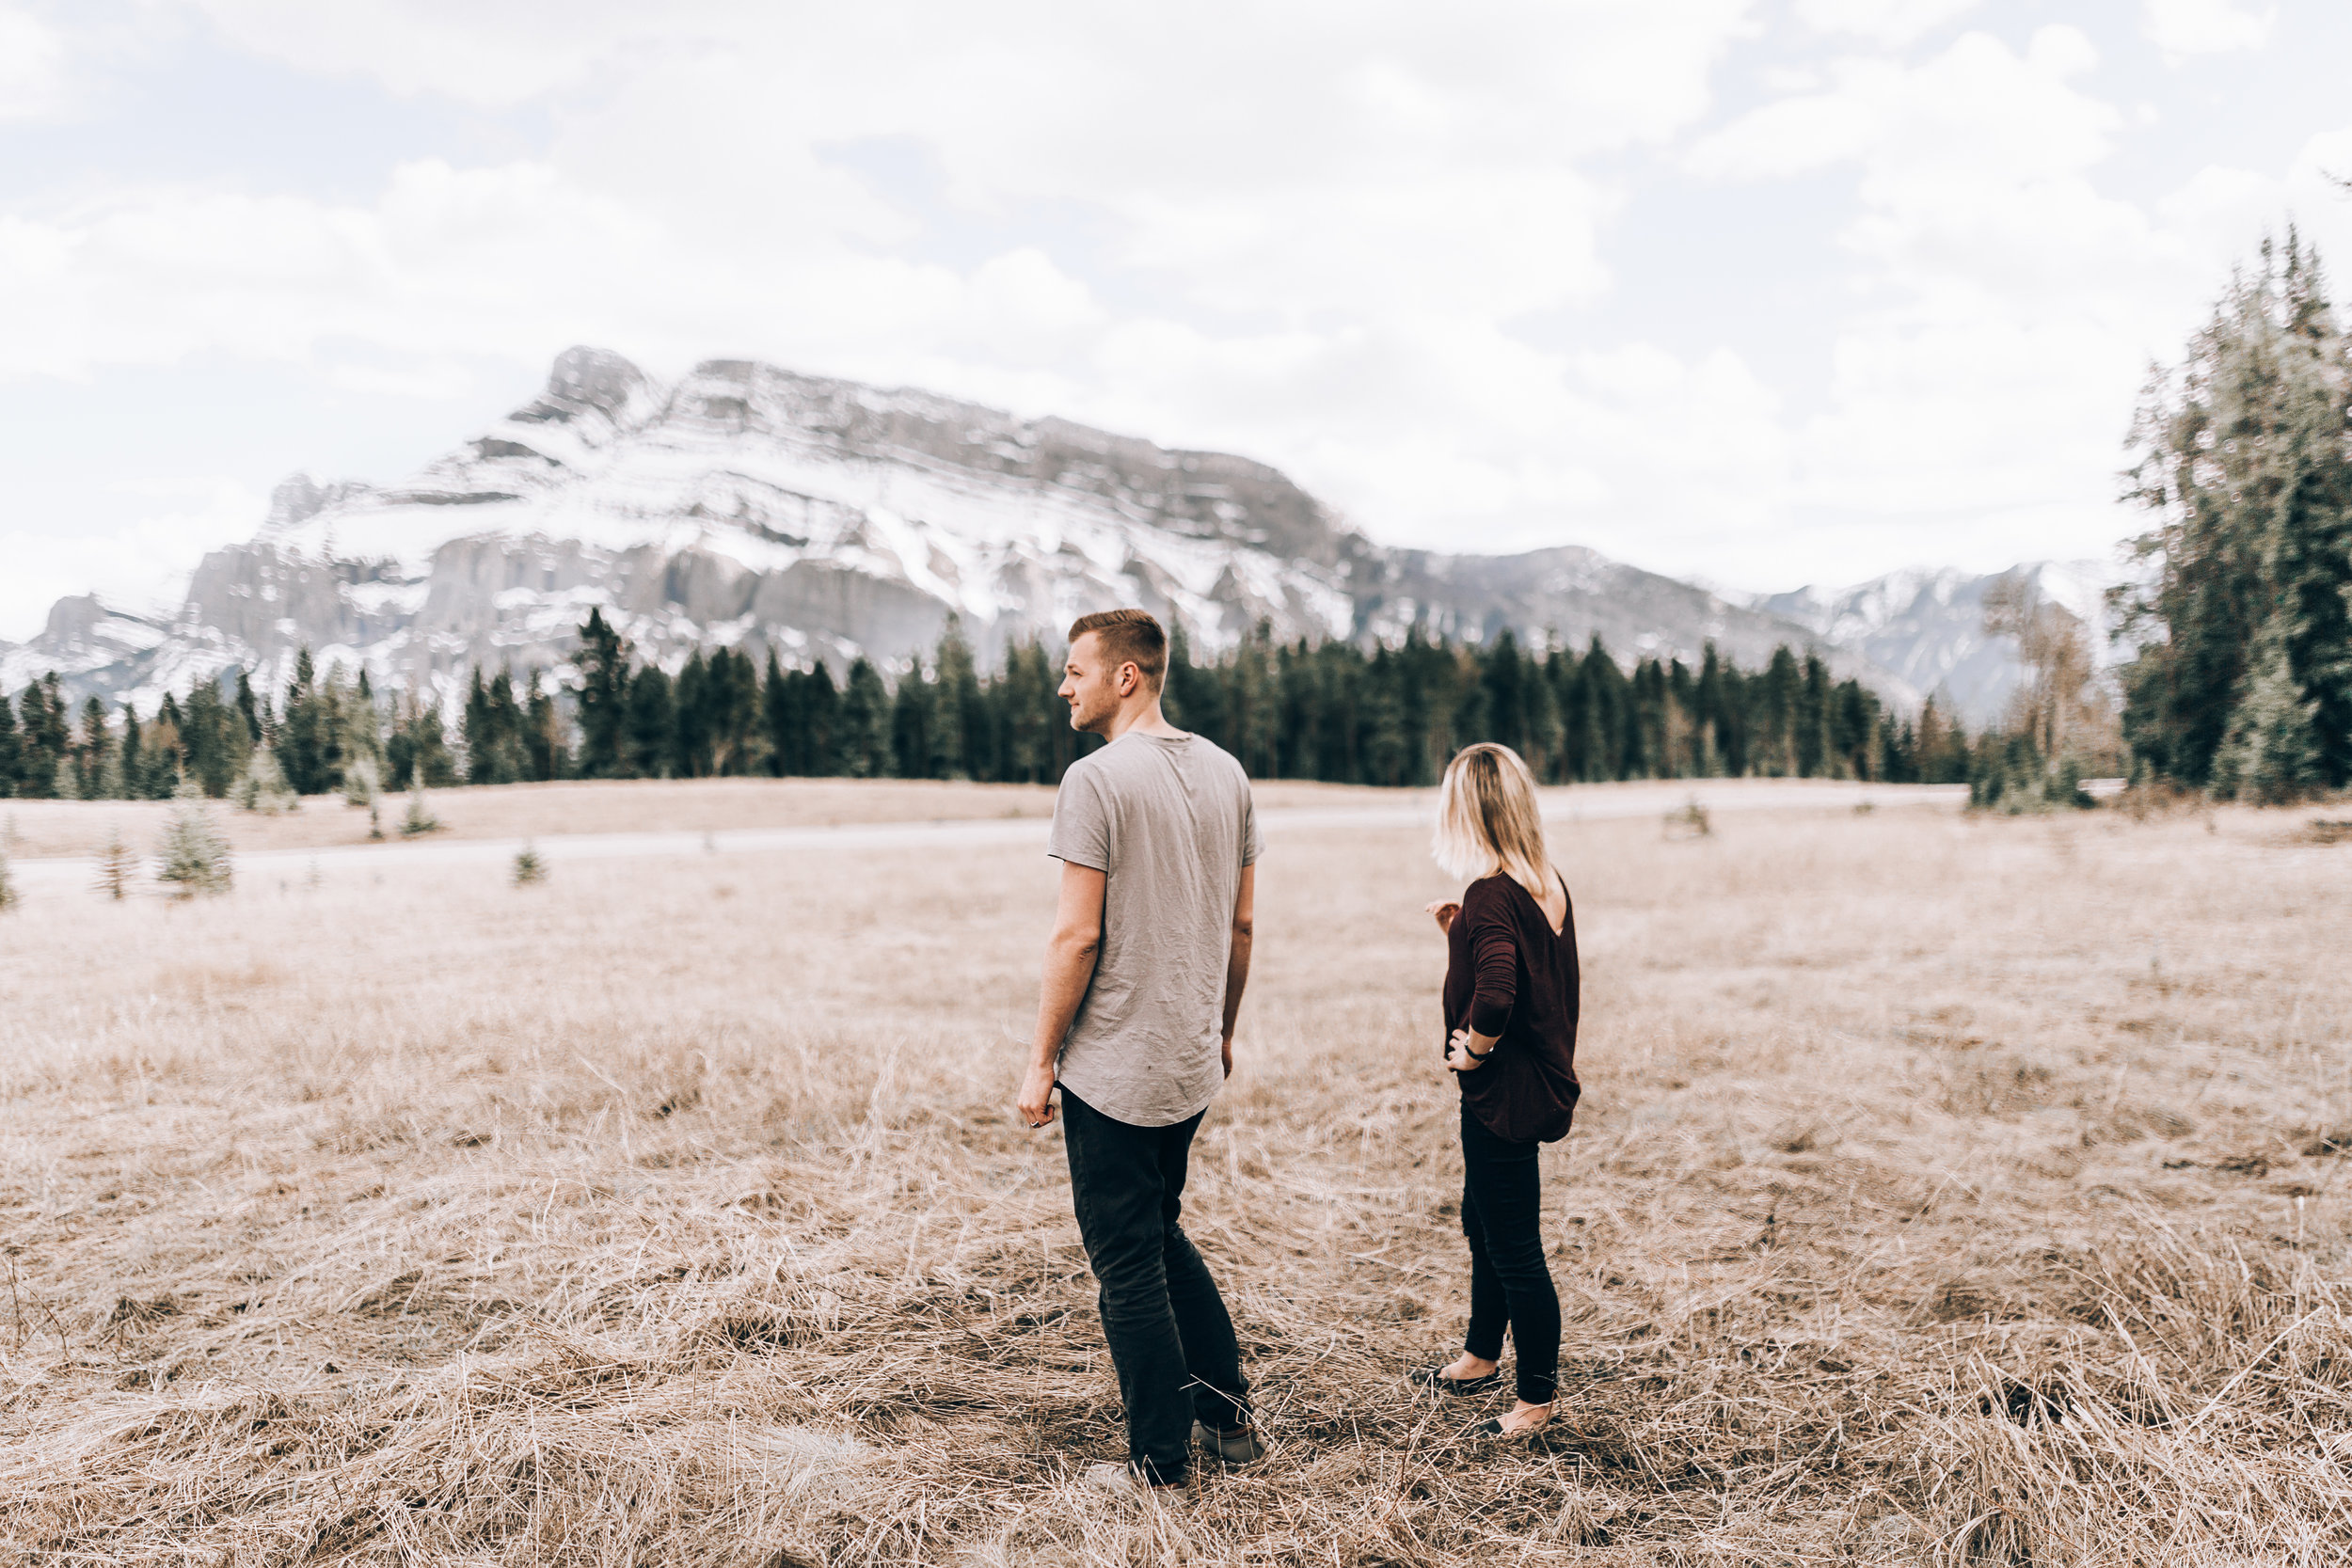 simpleperfectionsphotography.cullen+chelsey-54.jpg